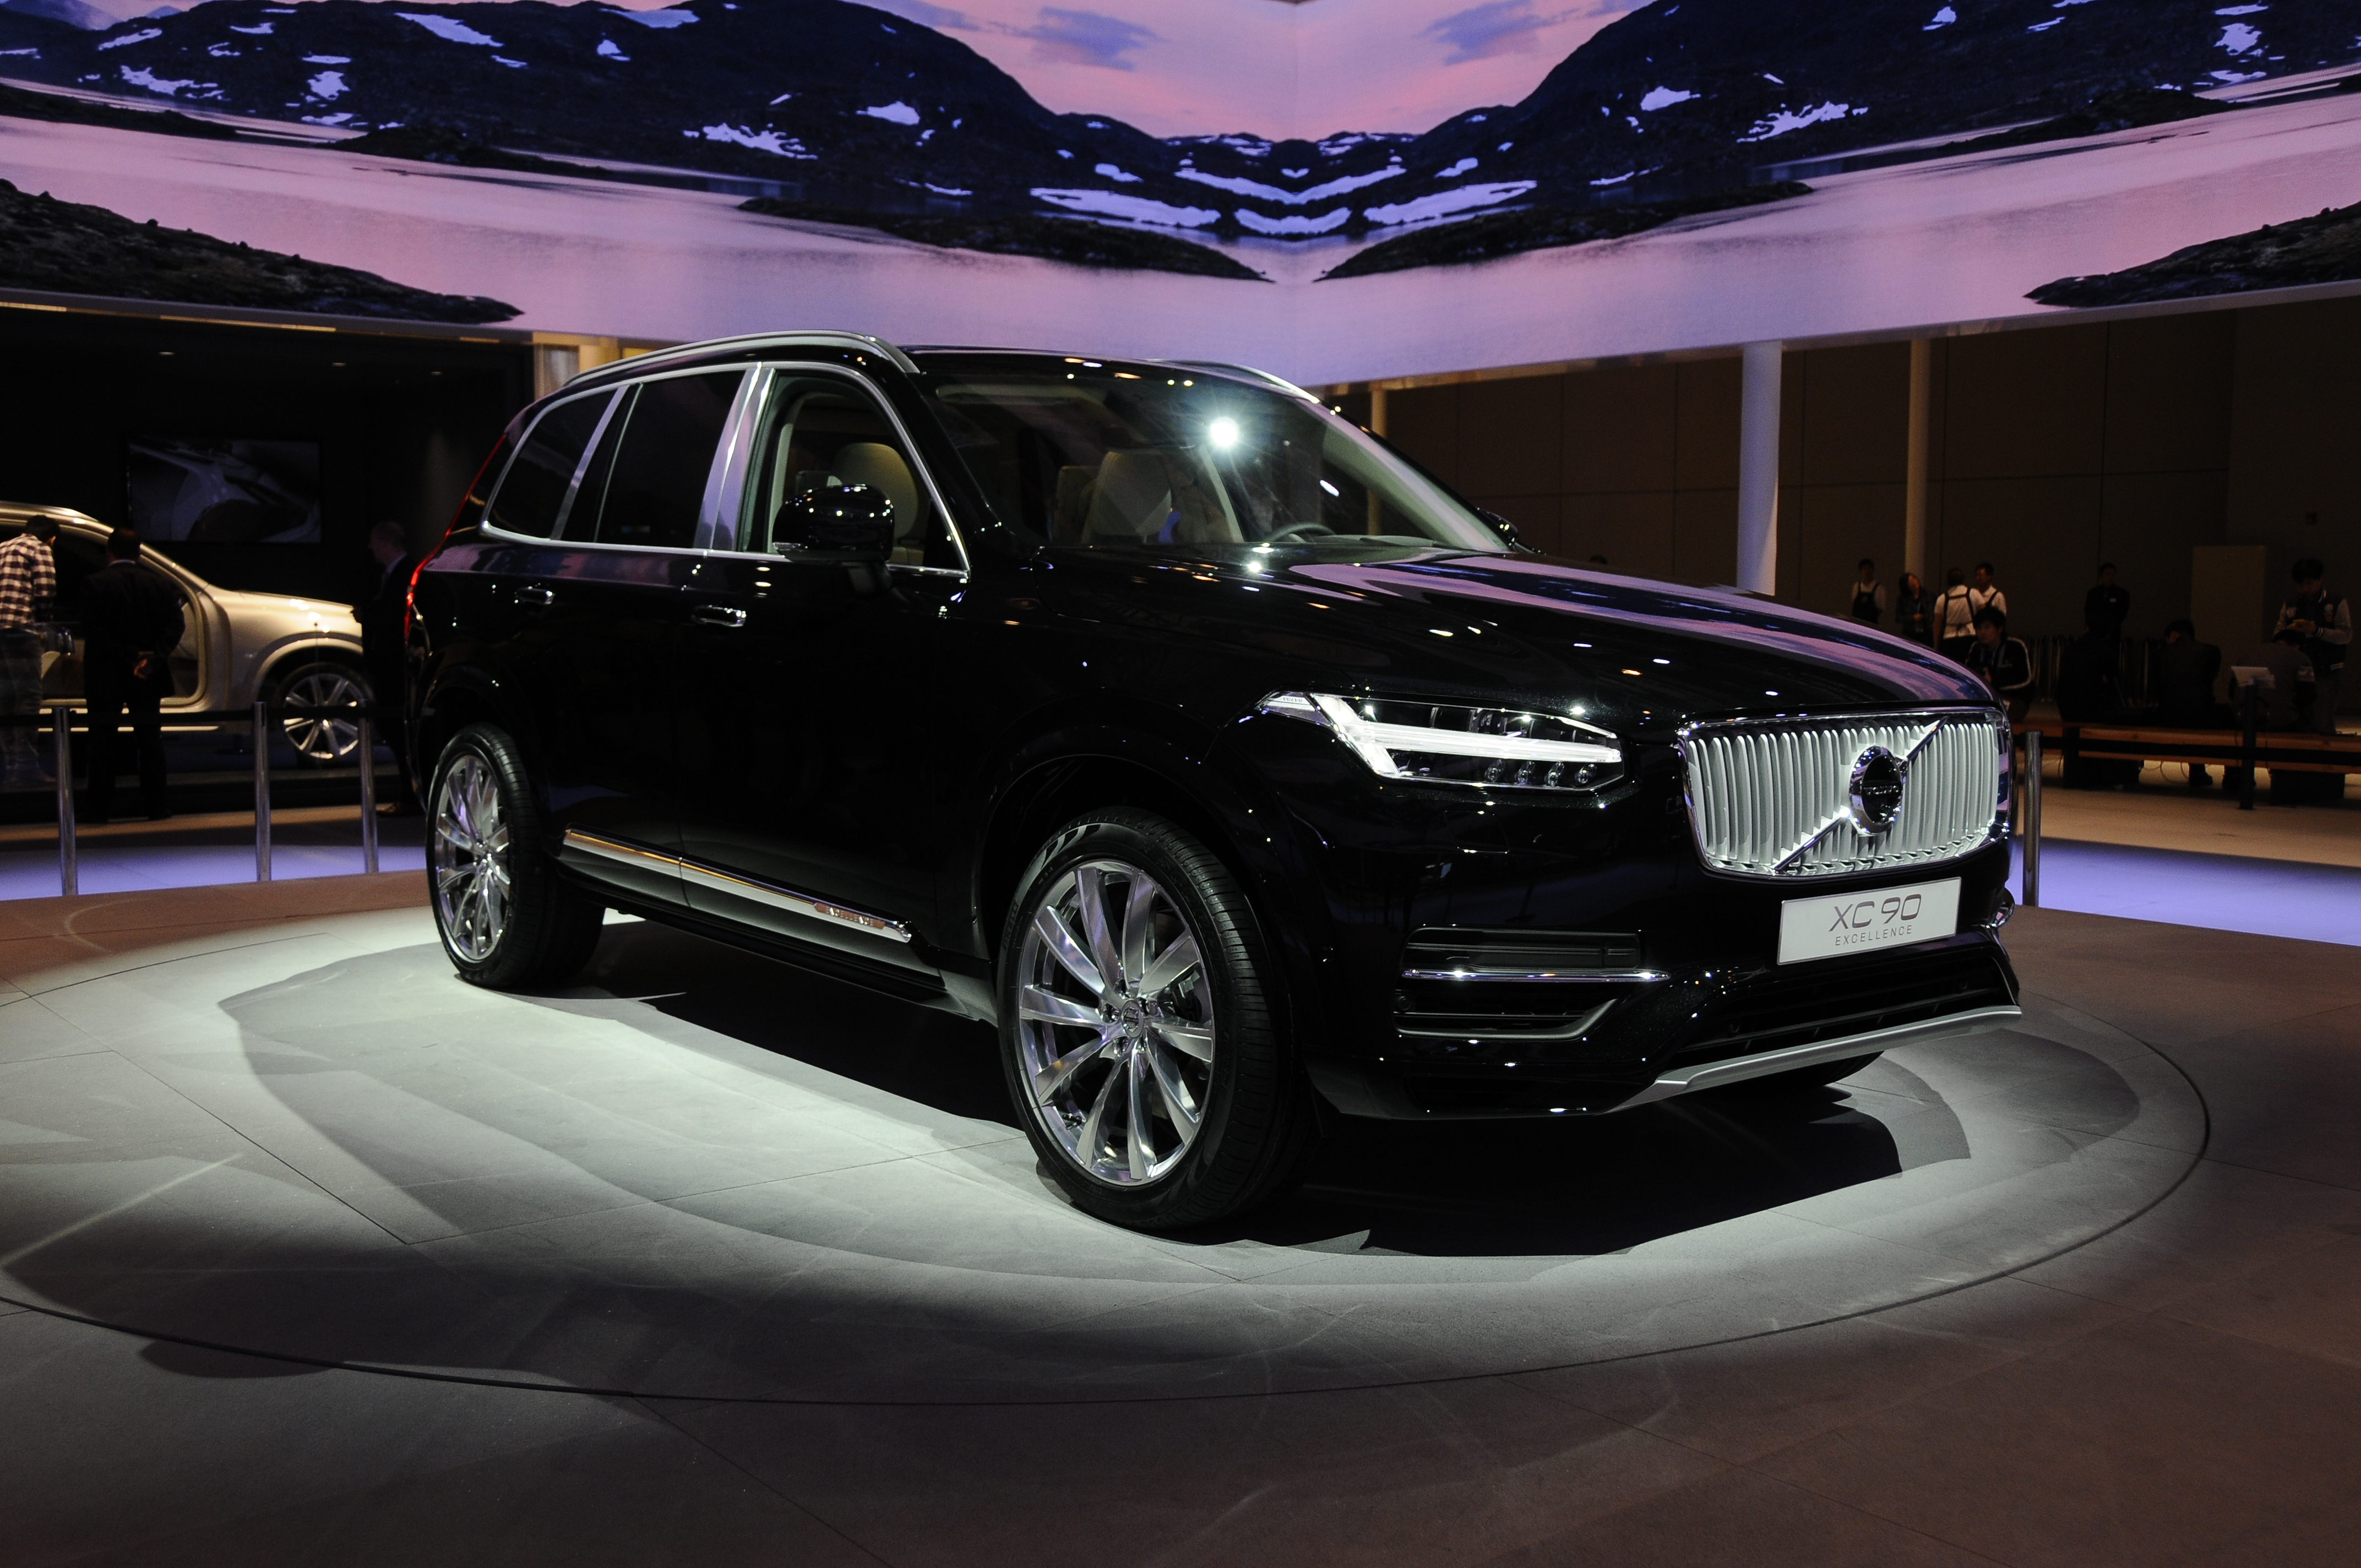 volvo xc90 excellence luxurious 4 seat suv debuts paul tan image 332627. Black Bedroom Furniture Sets. Home Design Ideas